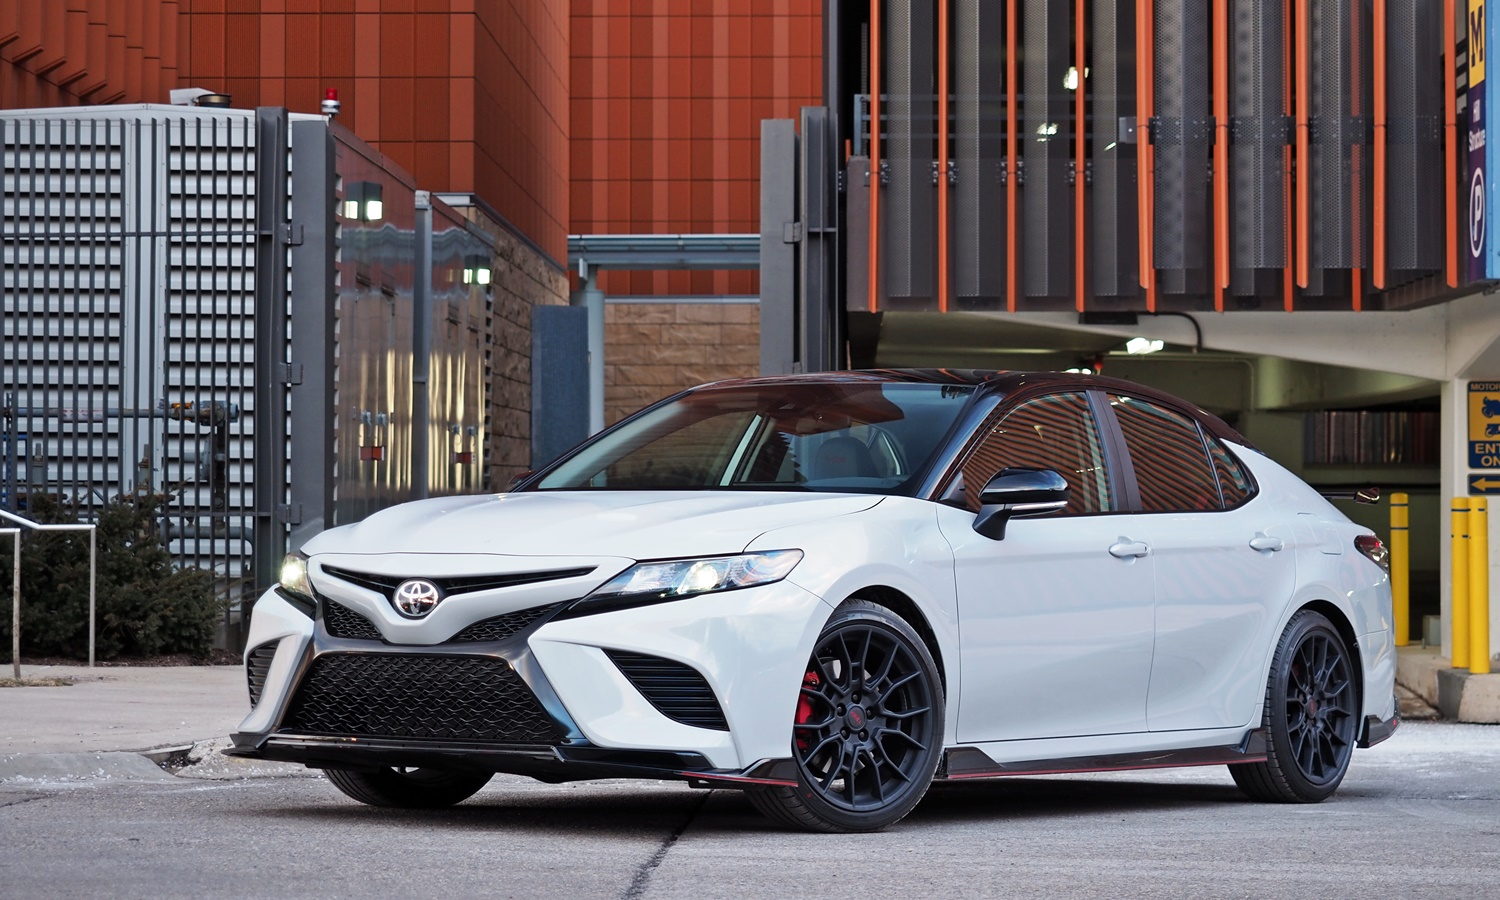 Toyota Camry TRD front 3/4 view